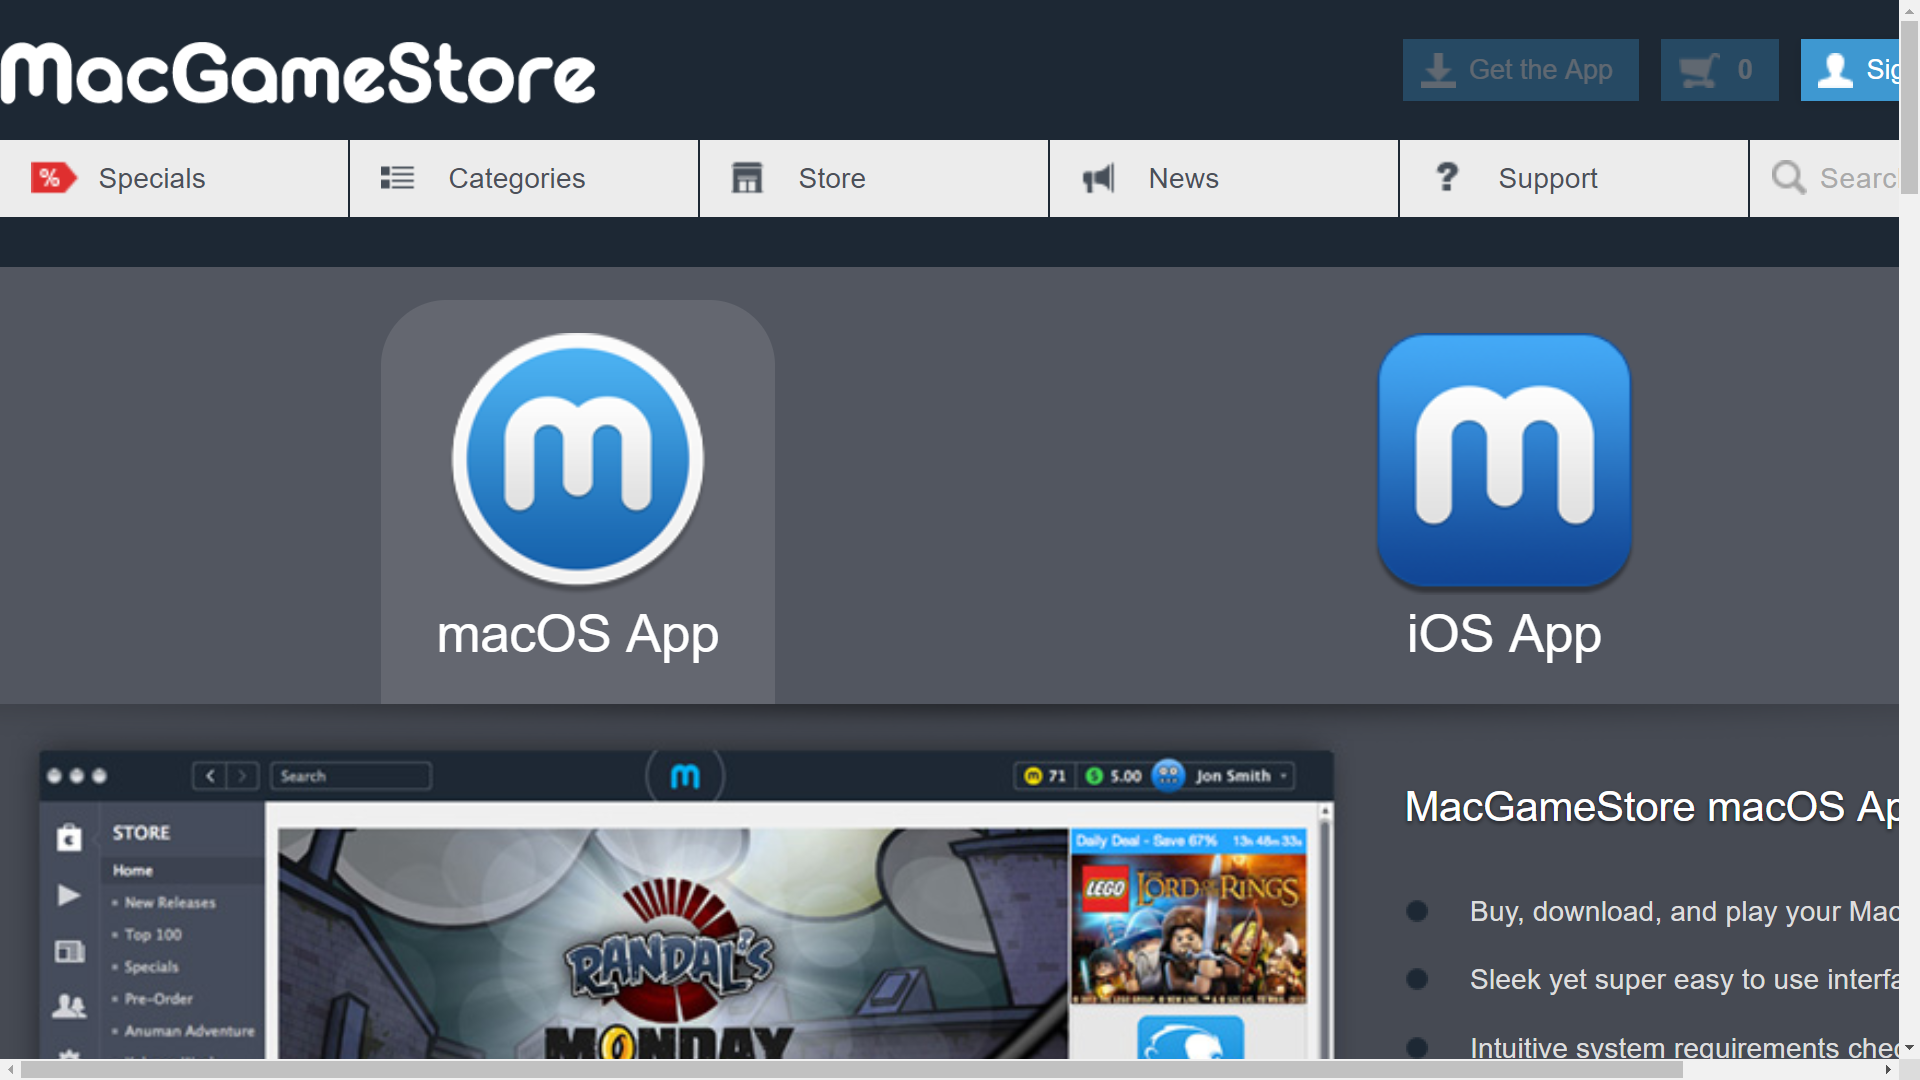 My 1 Very Important Belief Is In MacGameStore App. That's